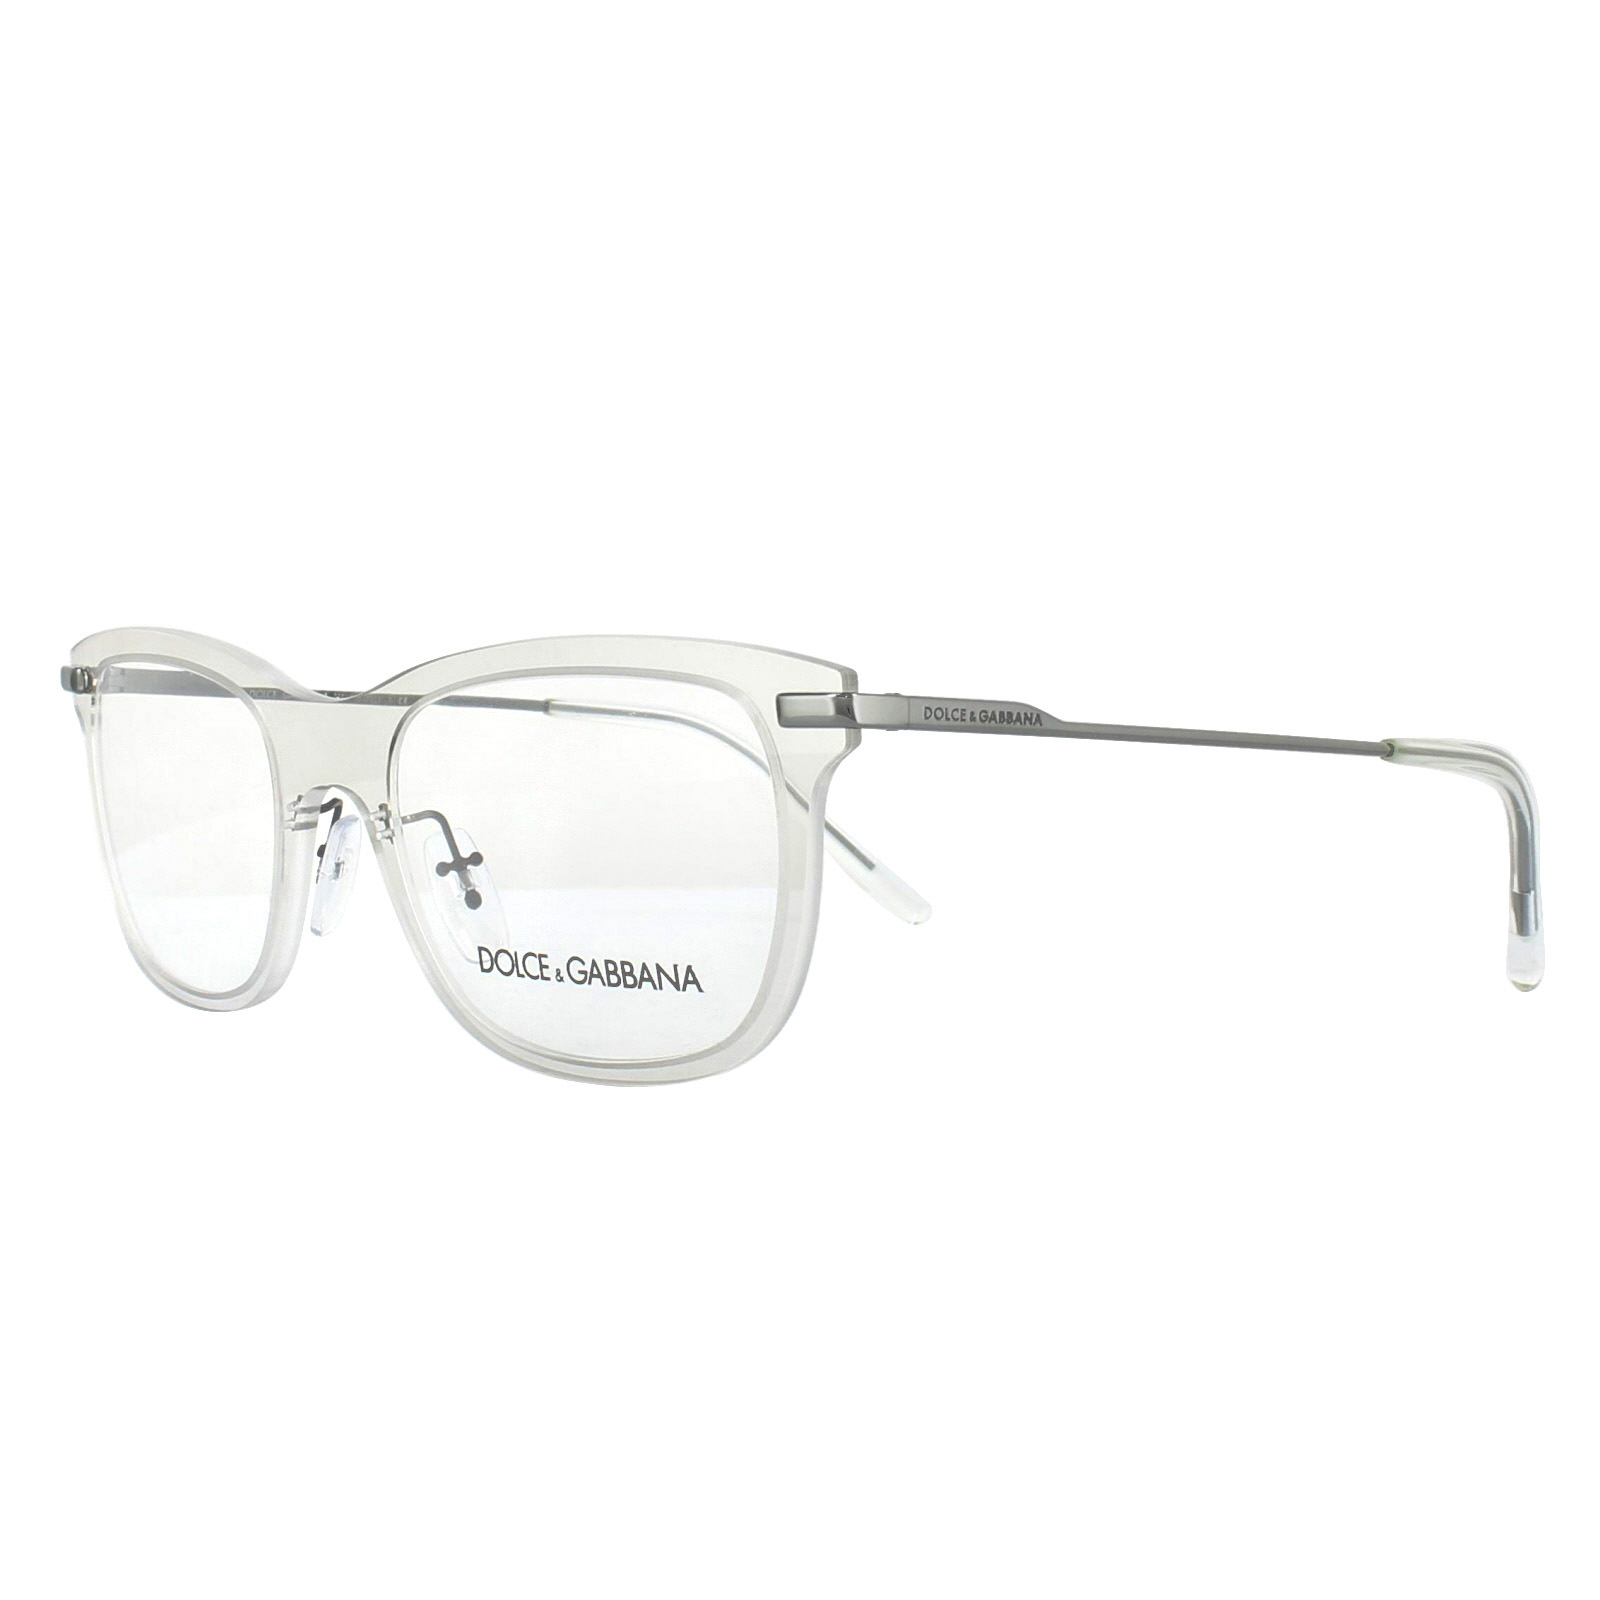 273aa820873 Details about Dolce   Gabbana Glasses Frames DG 1293 04 Clear 53mm Mens